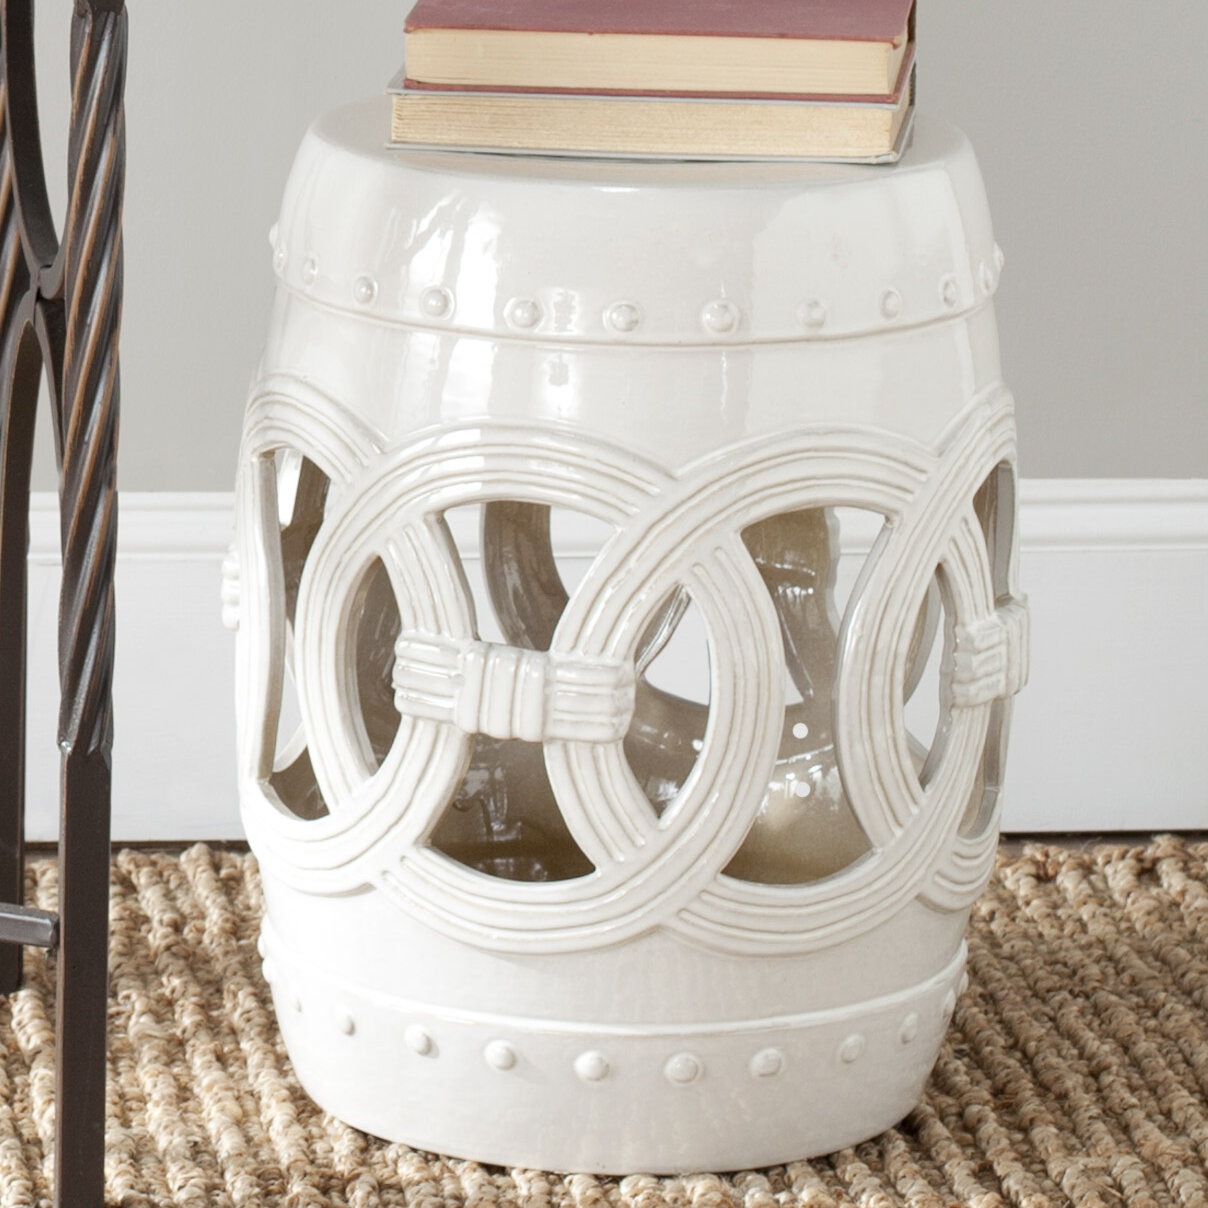 Blue & White Garden Stools You'Ll Love In 2020 | Wayfair Intended For Williar Cherry Blossom Ceramic Garden Stools (View 17 of 25)